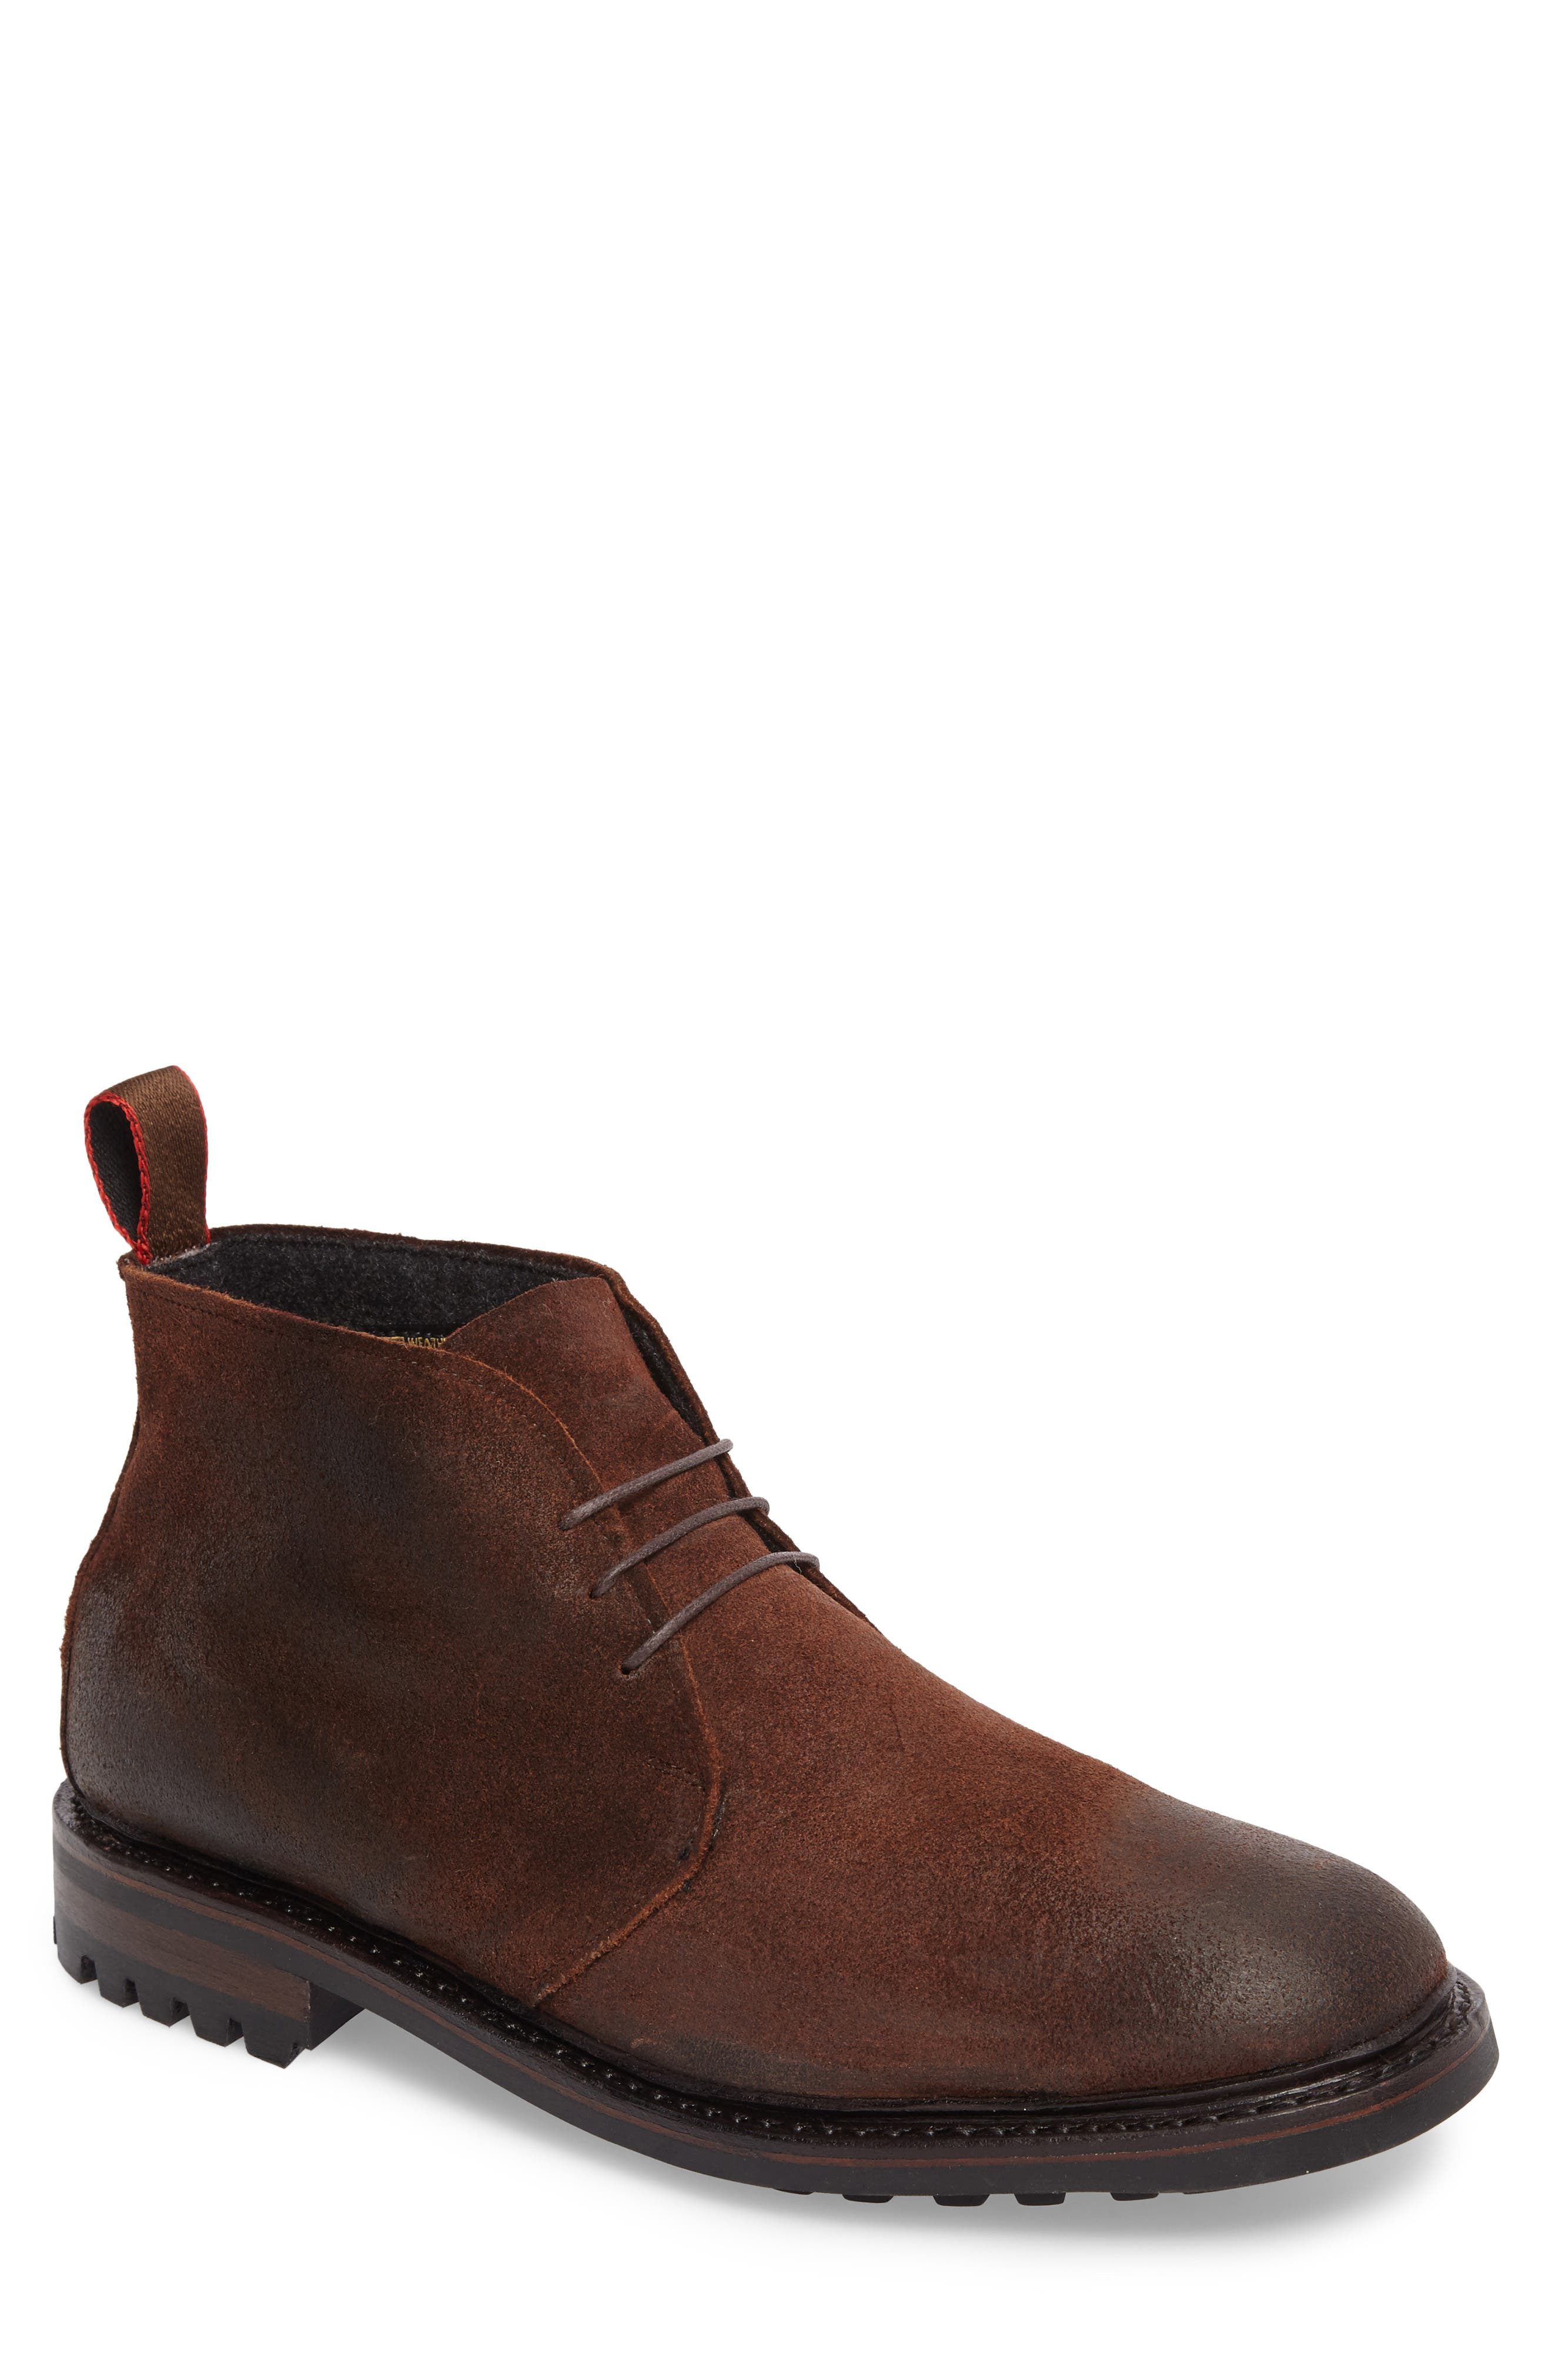 Allen Edmonds Surrey Water Repellent Chukka Boot (Men)